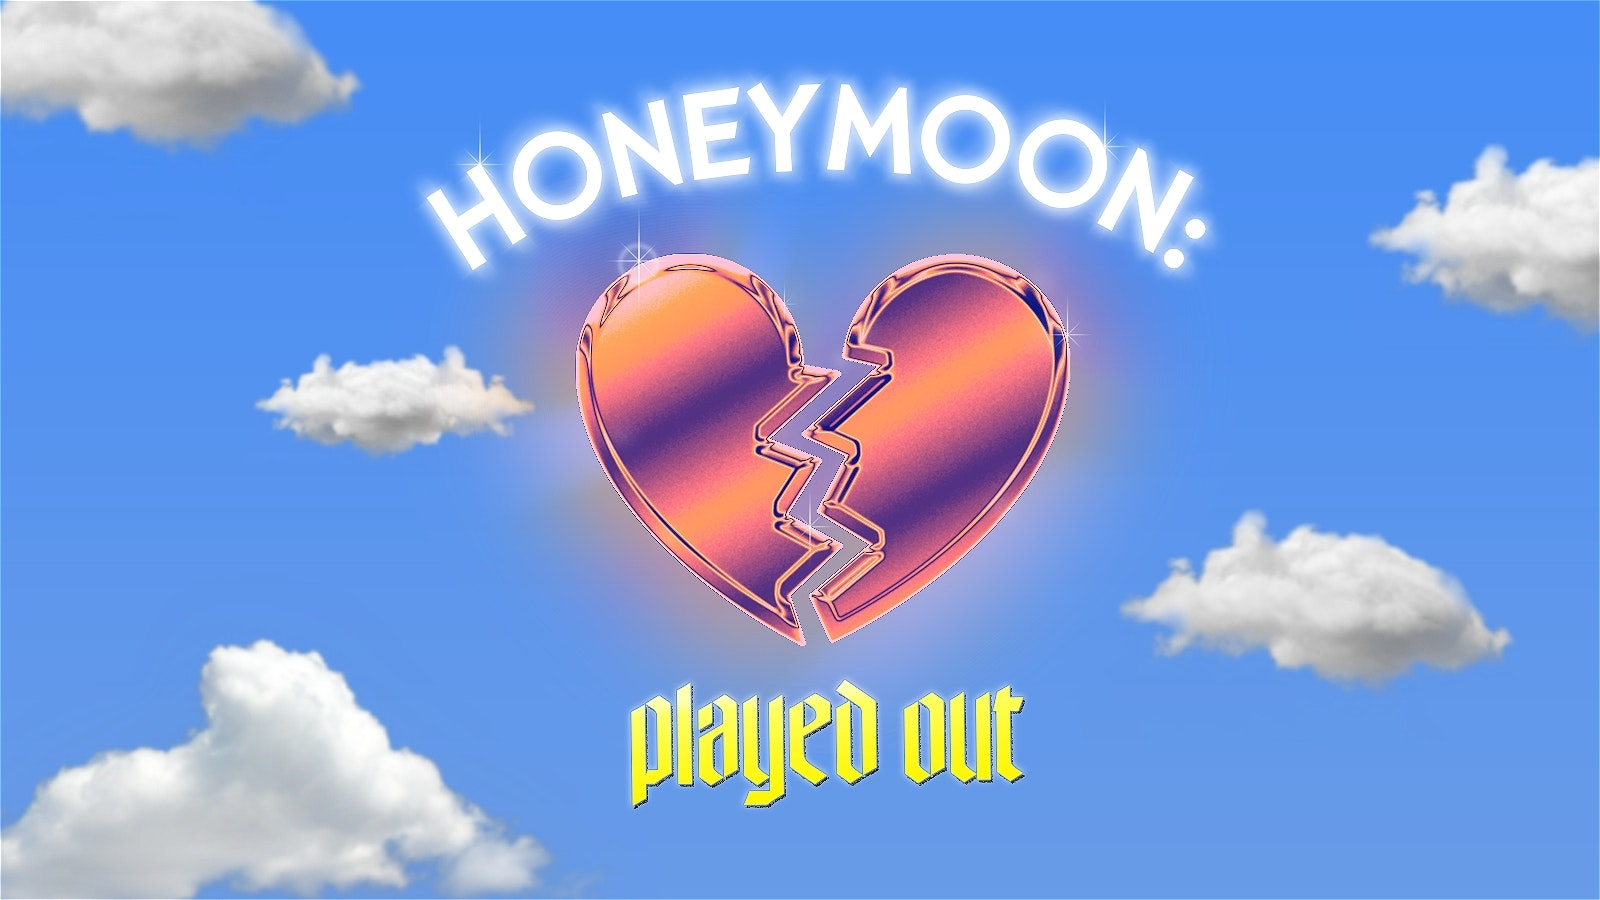 Honeymoon: Played Out